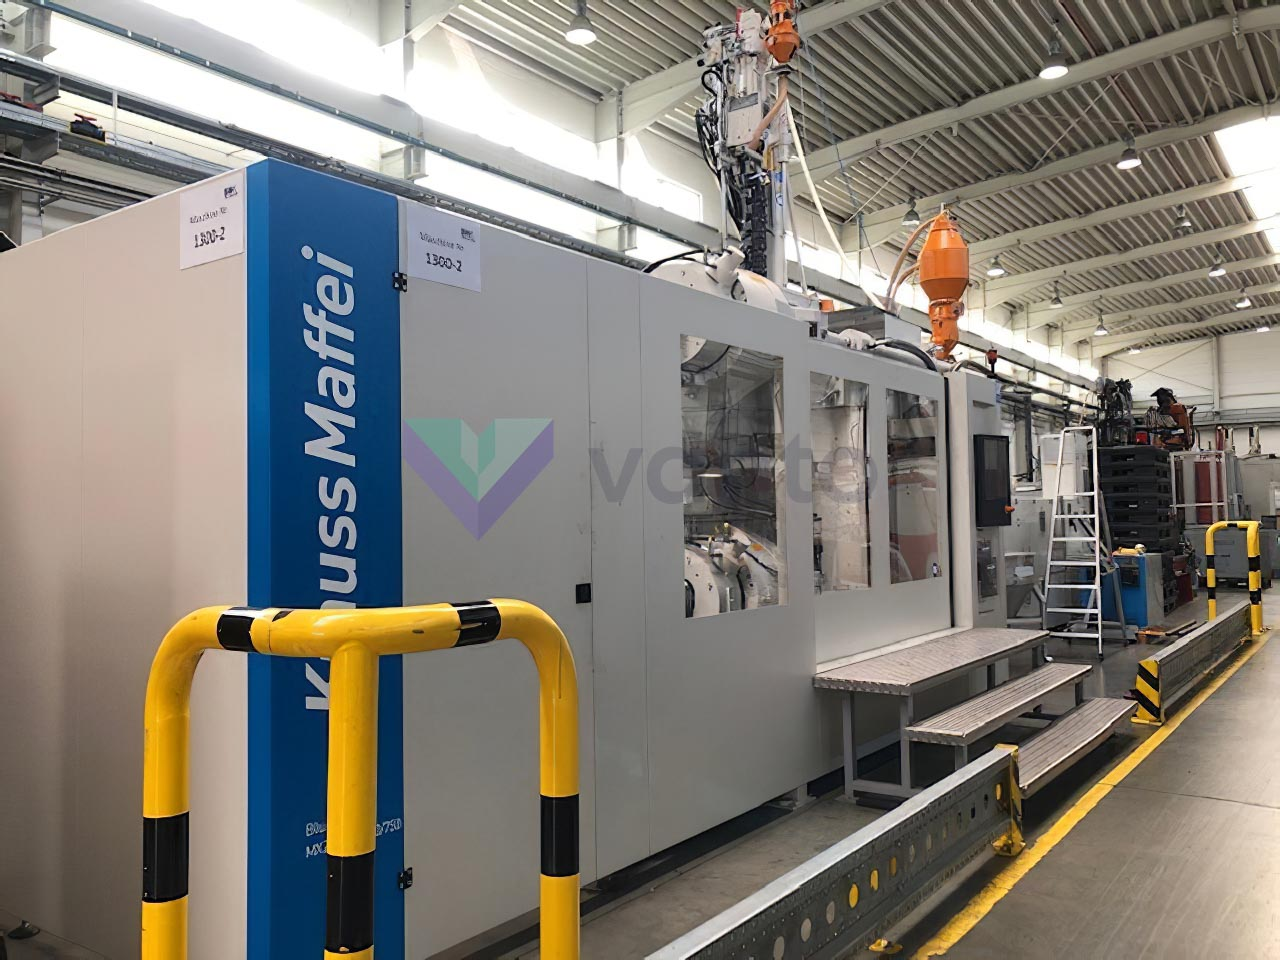 KRAUSS MAFFEI KM 1300-8100-750 CX Z 1300t bimaterial injection molding machine (2019) id10476